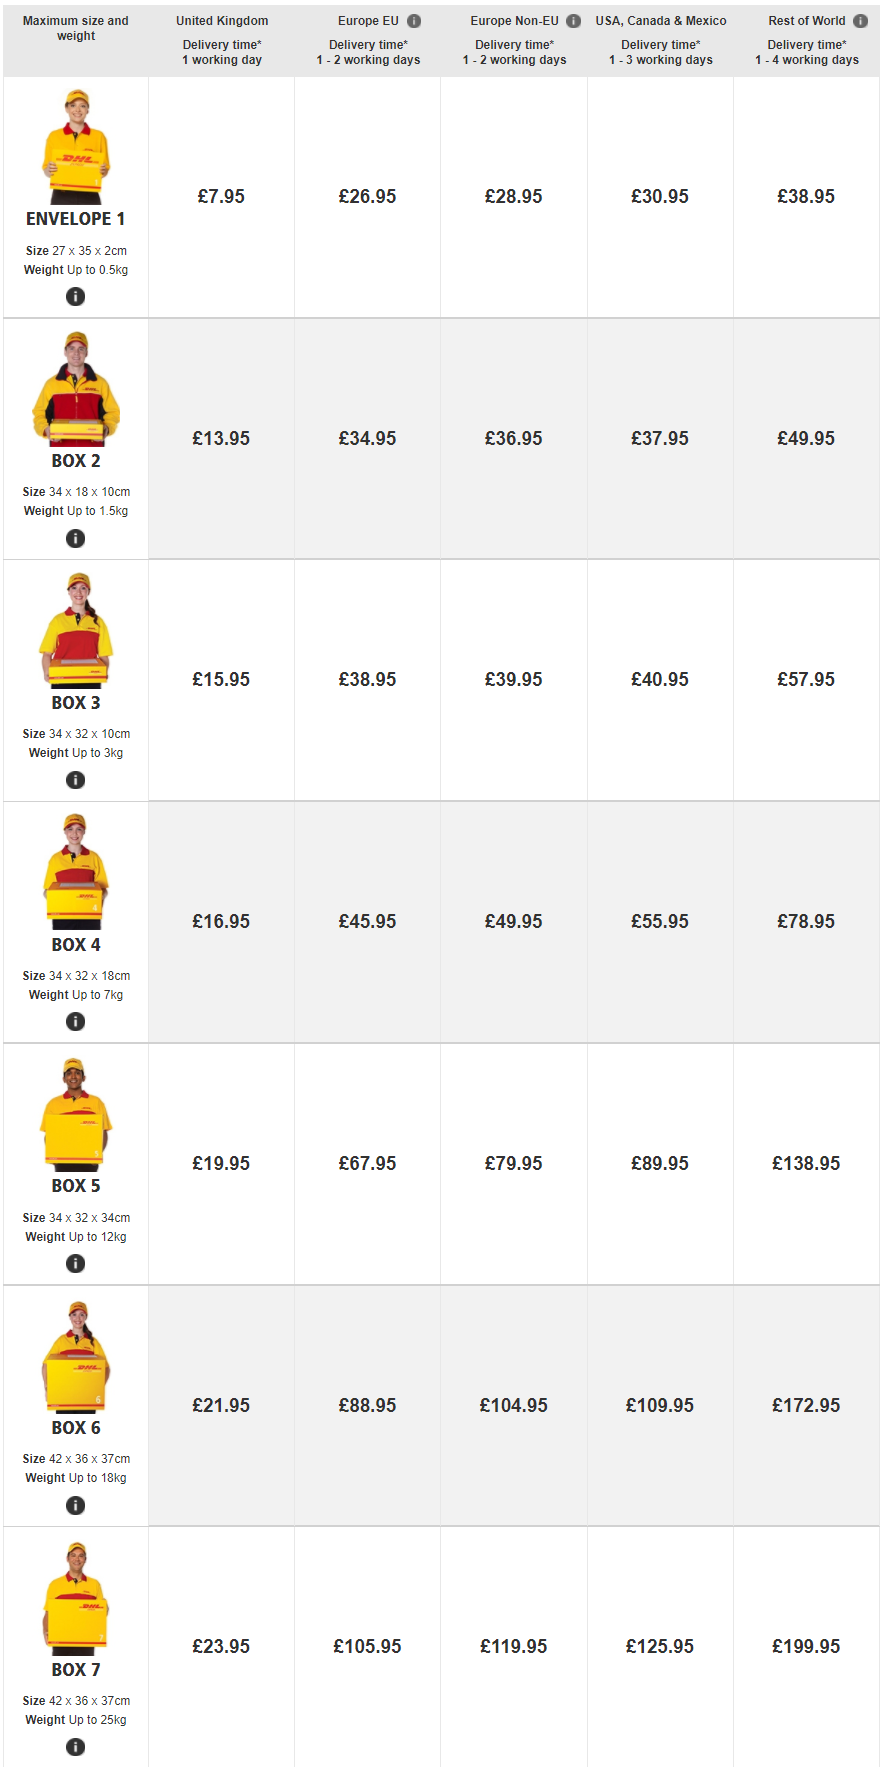 DHL Prices